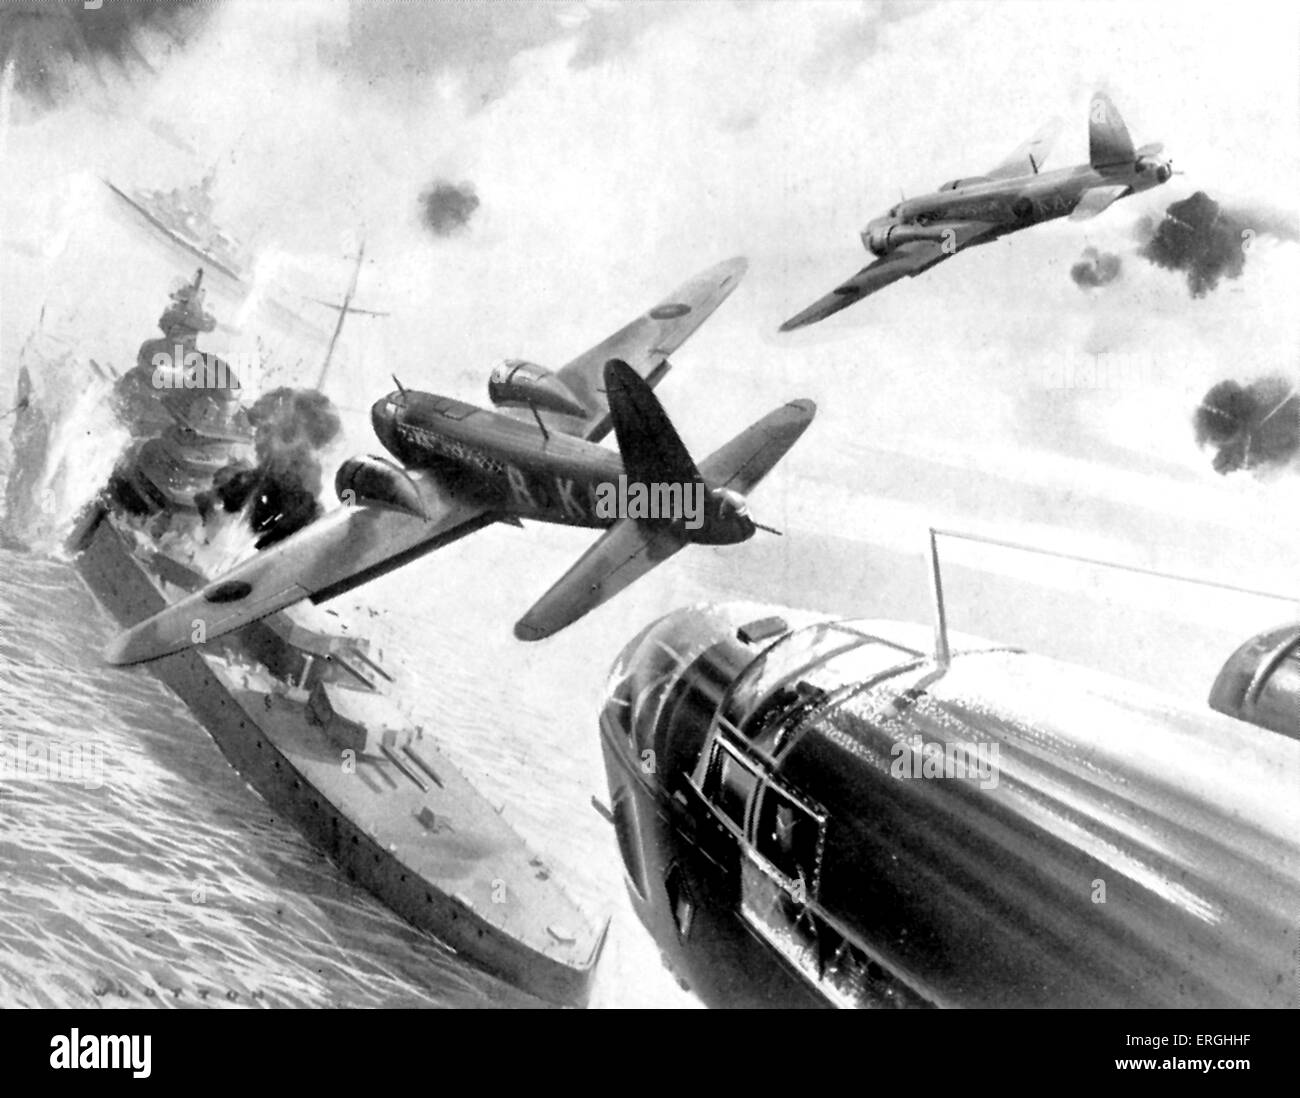 WW2: Attack on German warships at Heligoland, reported 3 December 1939.  R.A.F. bombers. From 'Epic Series' - Stock Image